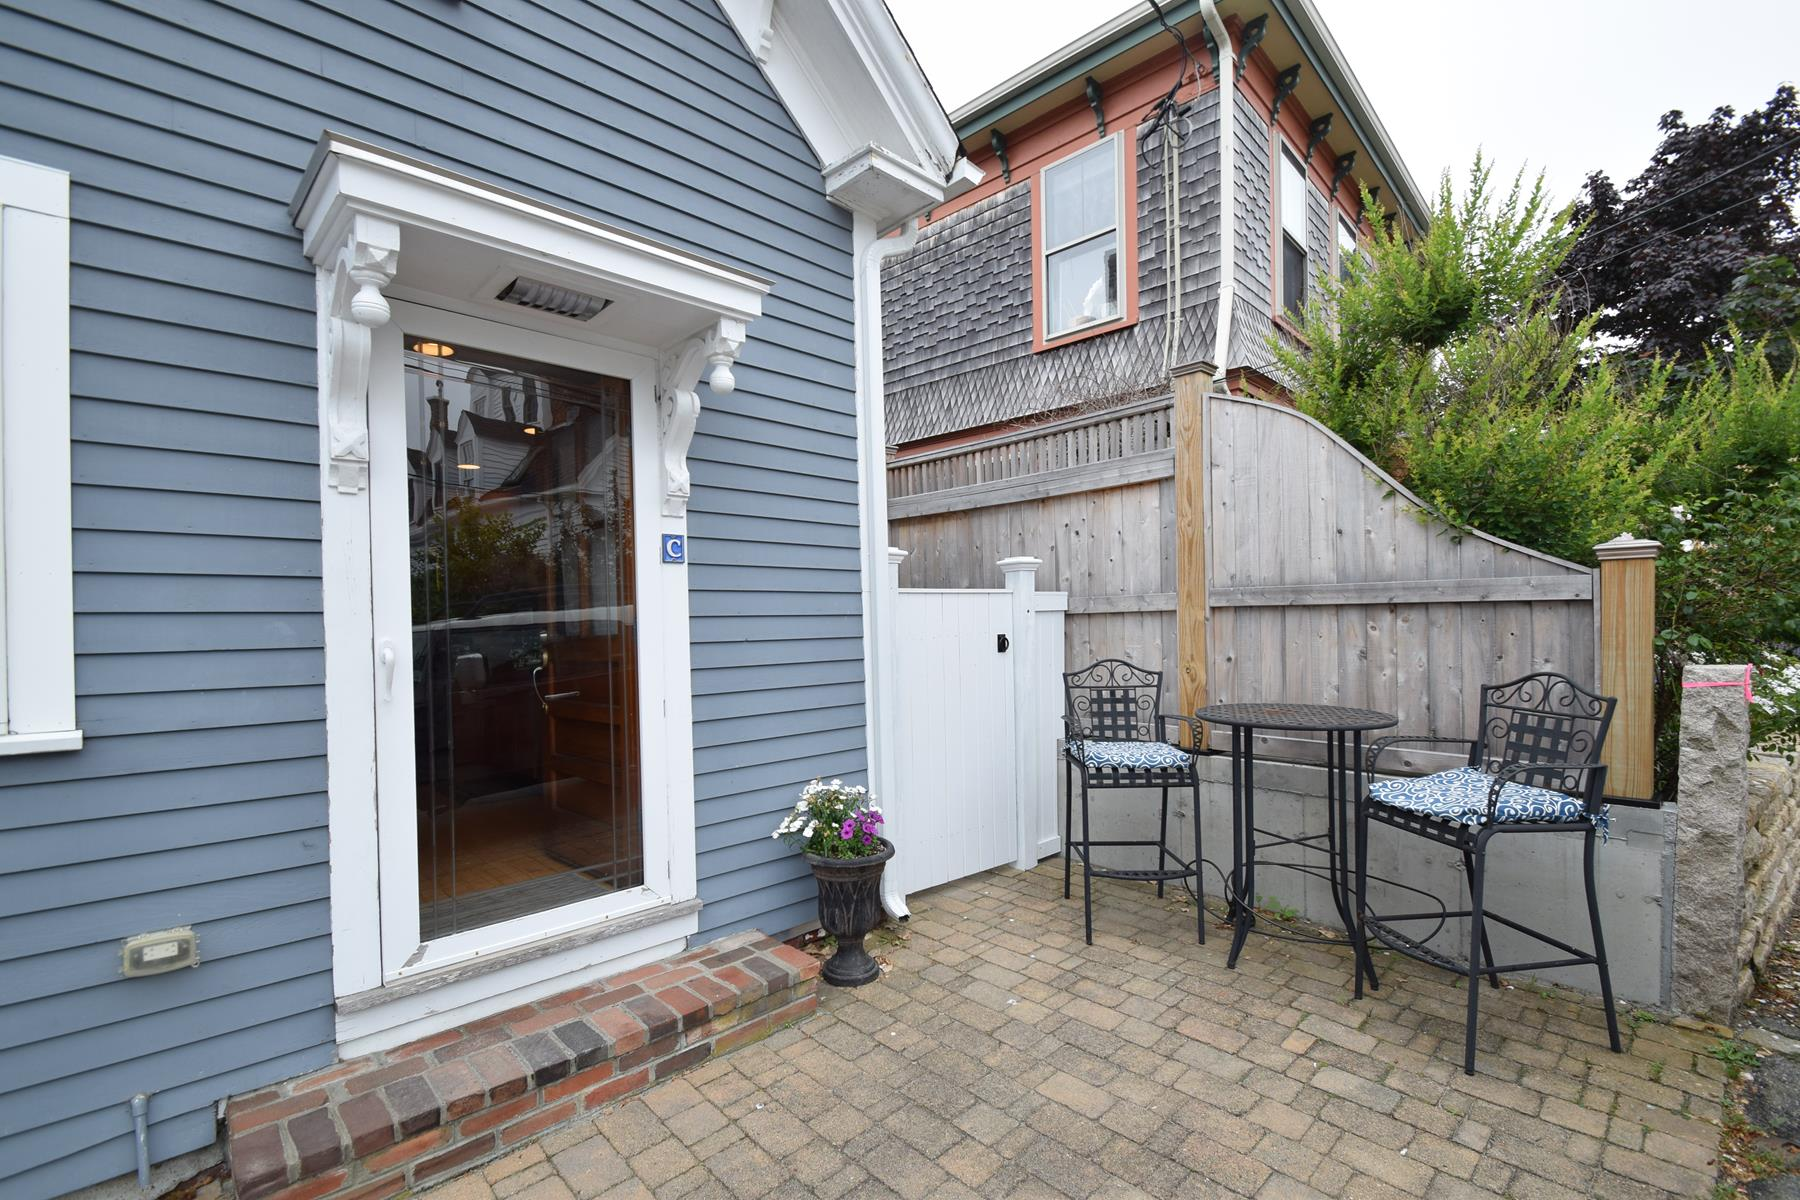 Condominium for Sale at Downtown 1BR Condominium 10 Pearl Street, Unit C Provincetown, Massachusetts, 02657 United States